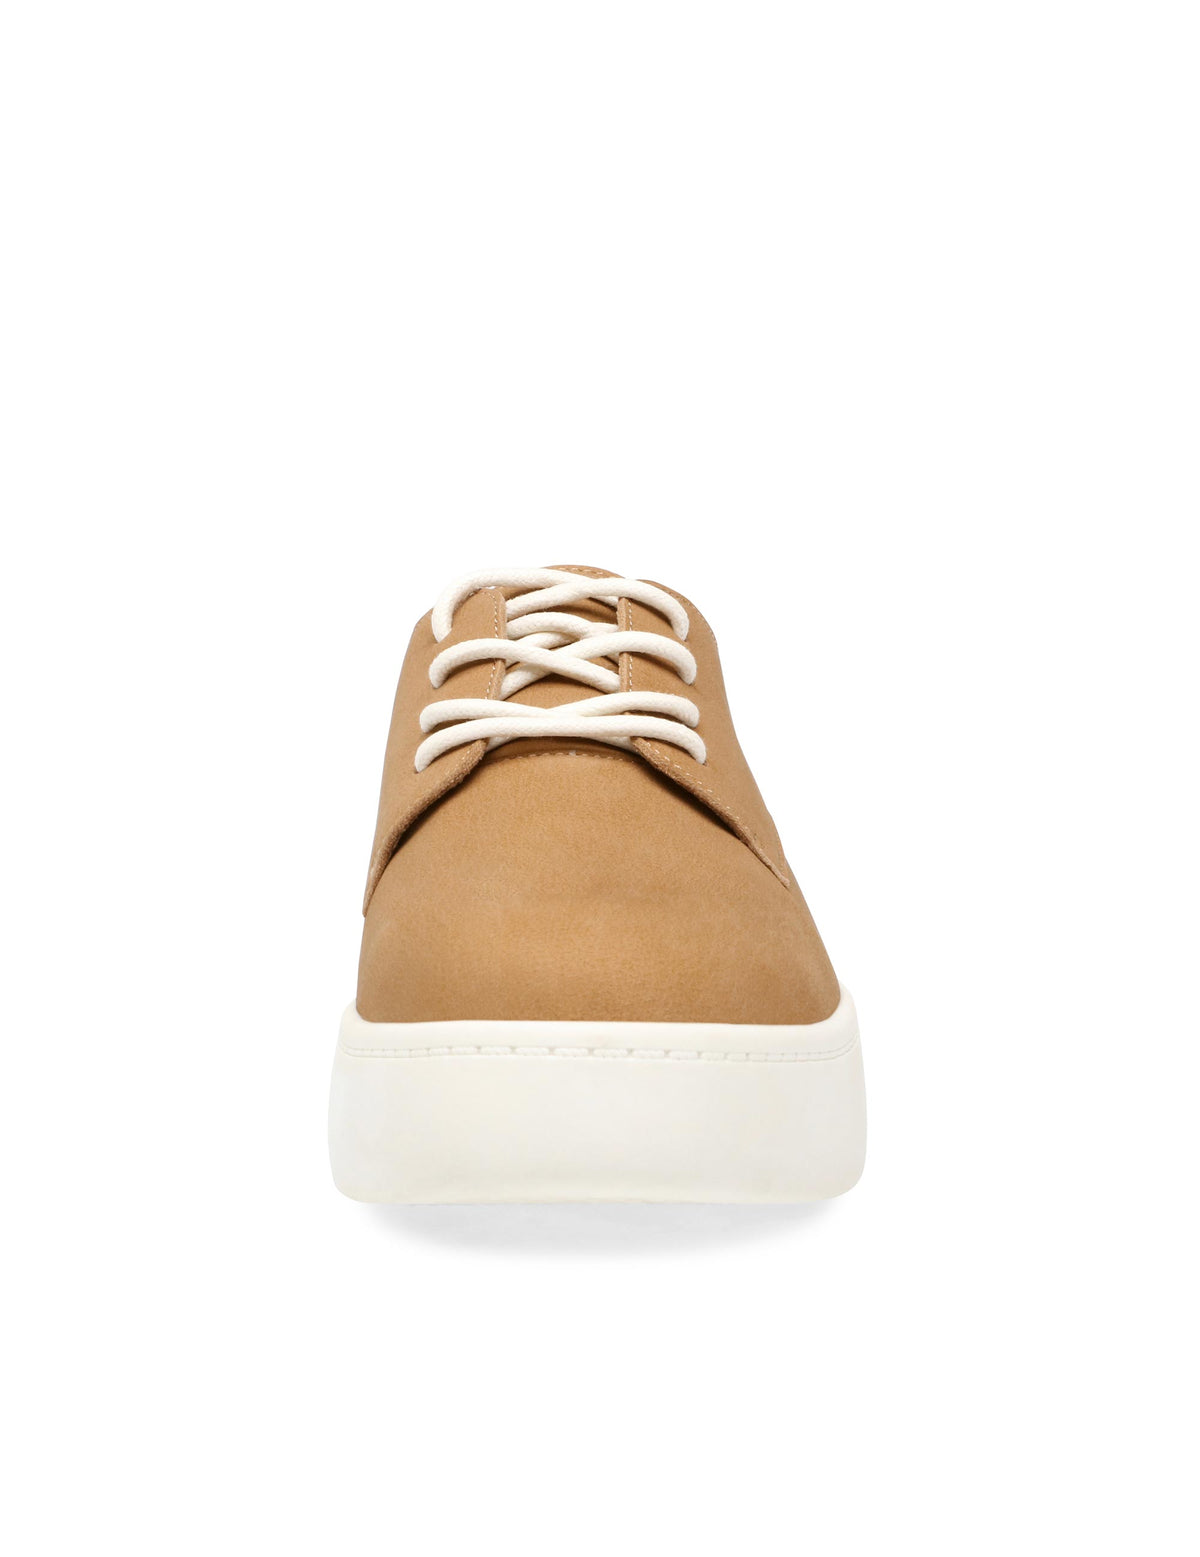 Townsend Lace Up Platform Sneakers